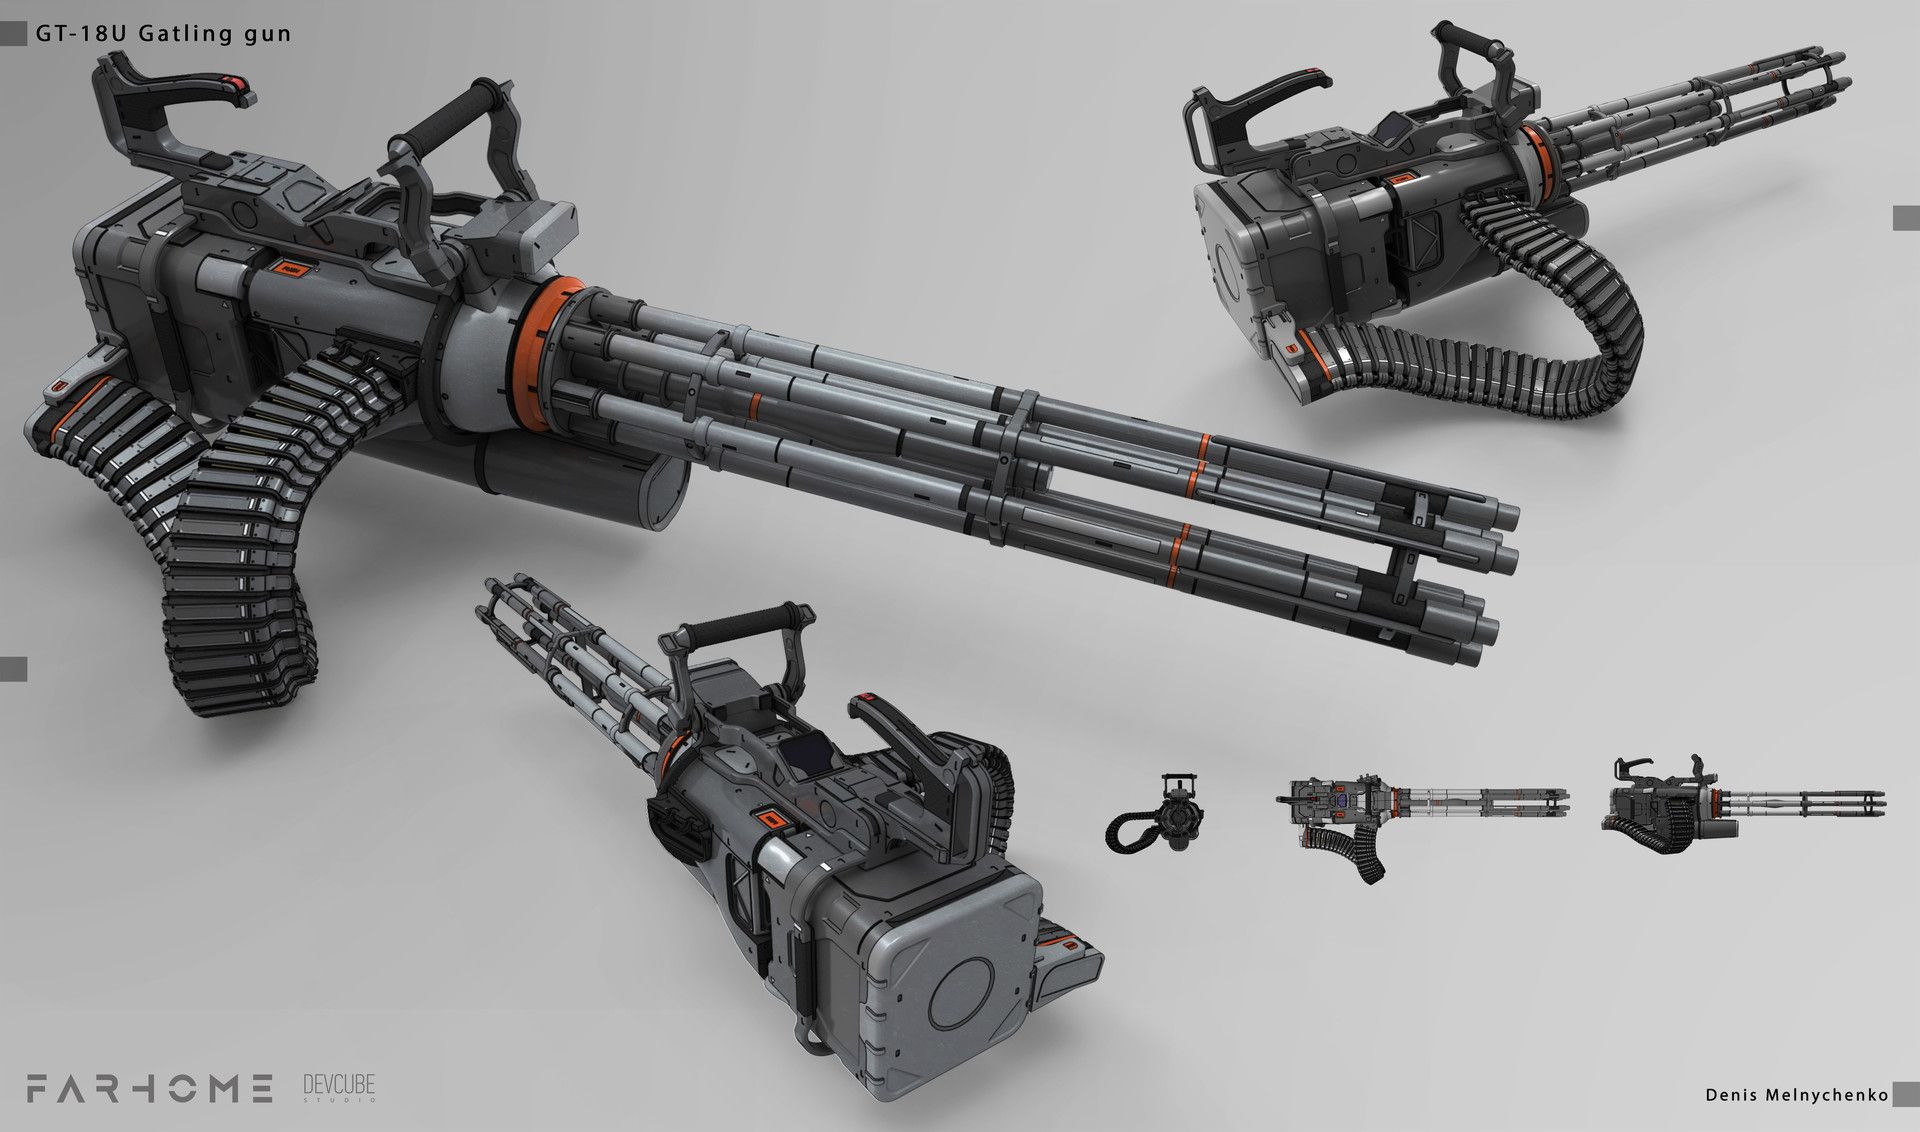 ArtStation - Gatling gun, Denis Melnychenko | Fantasy Weapon